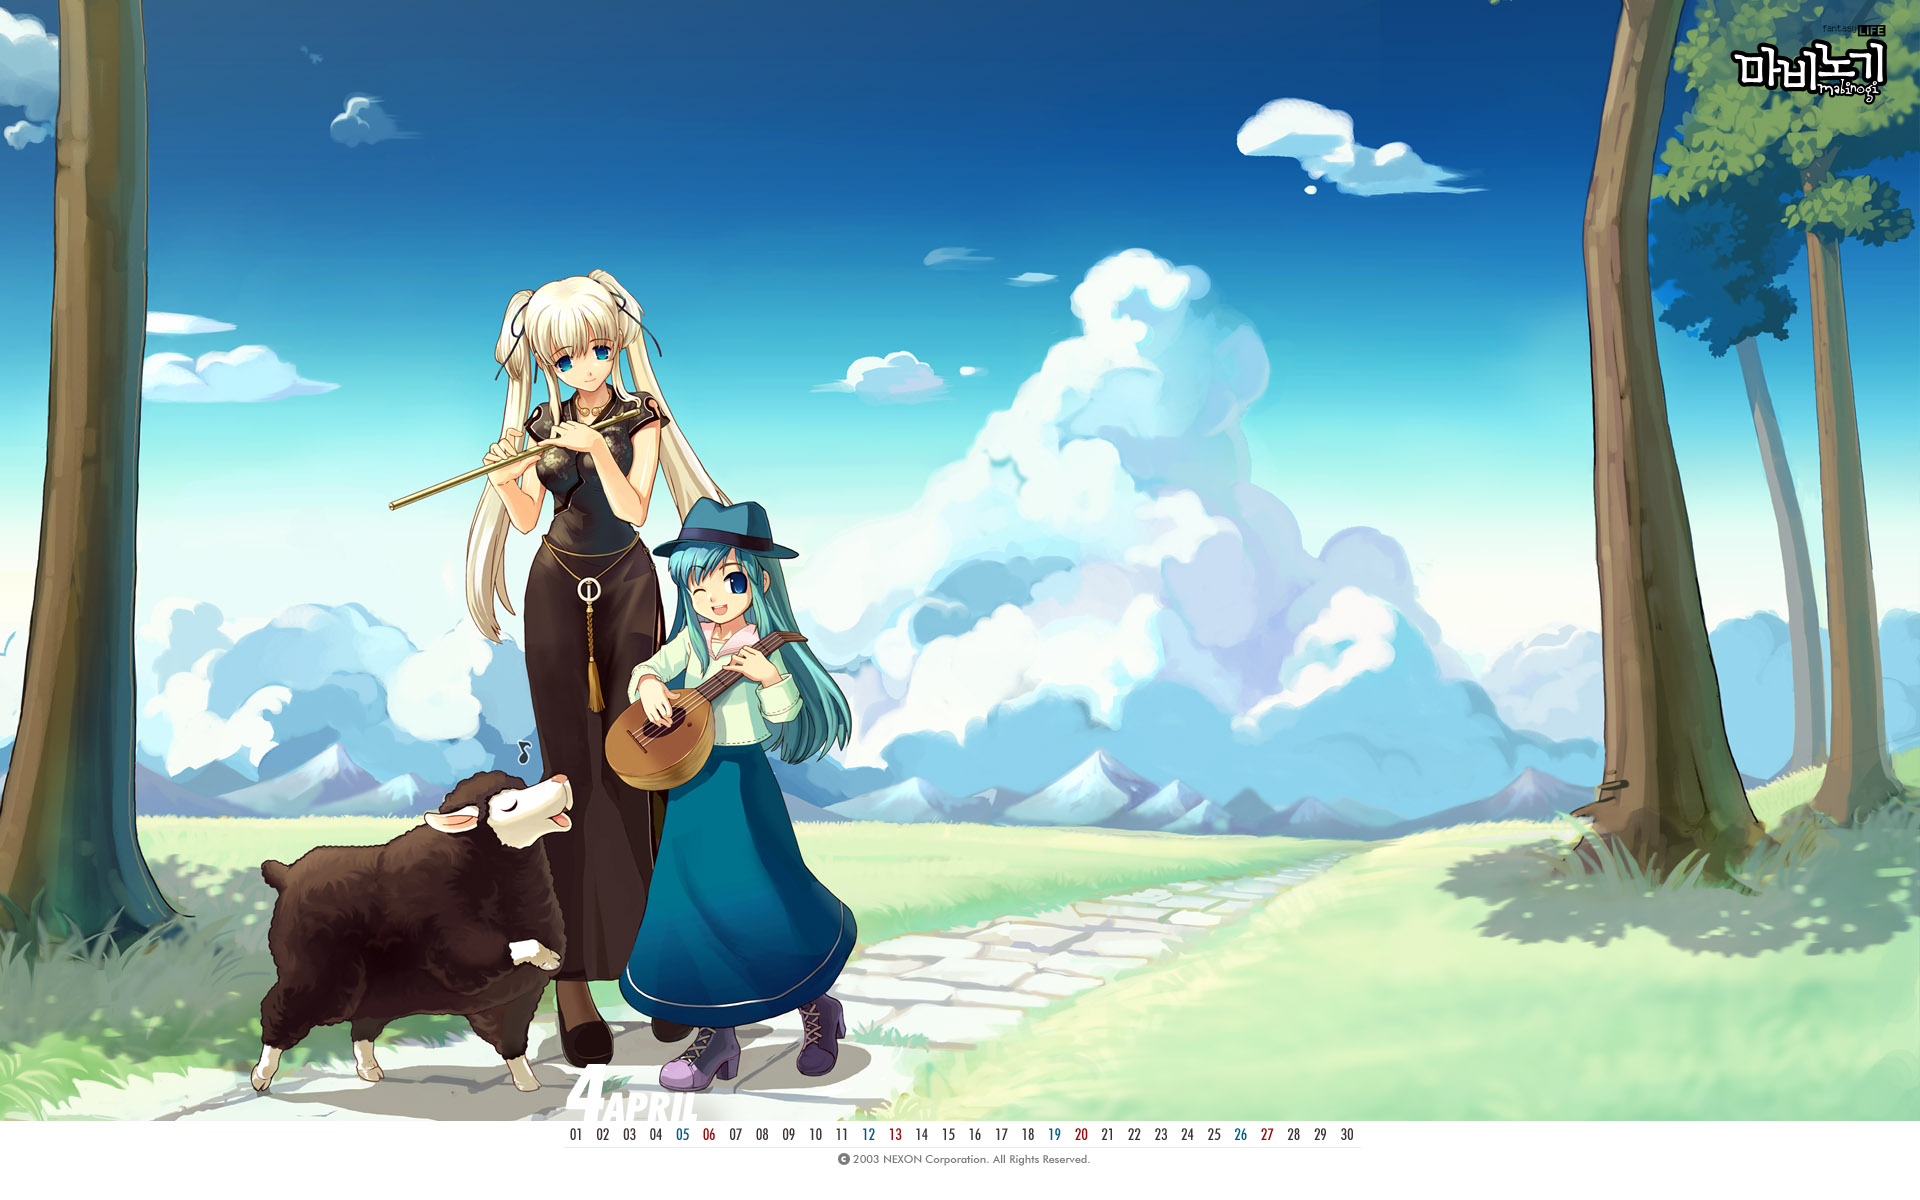 A femme looking adult playing a flute and femme looking child playing a ukelele standing outdoors with a sheep.